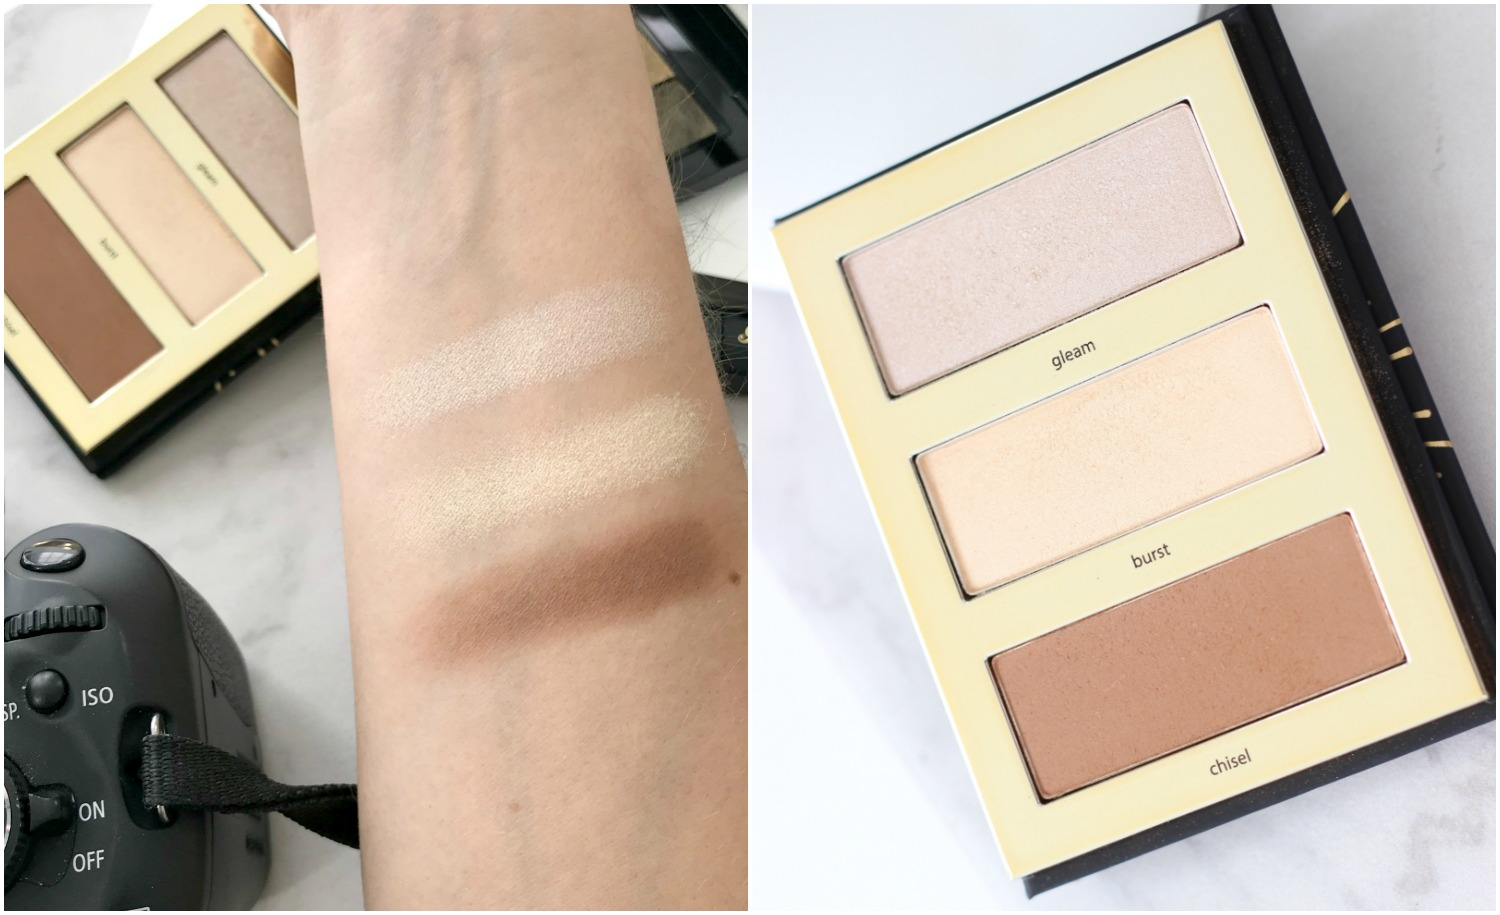 Tarte Tartiest Pro Glow To Go Palette Swatches and Close Up | Brighter Darling Blog